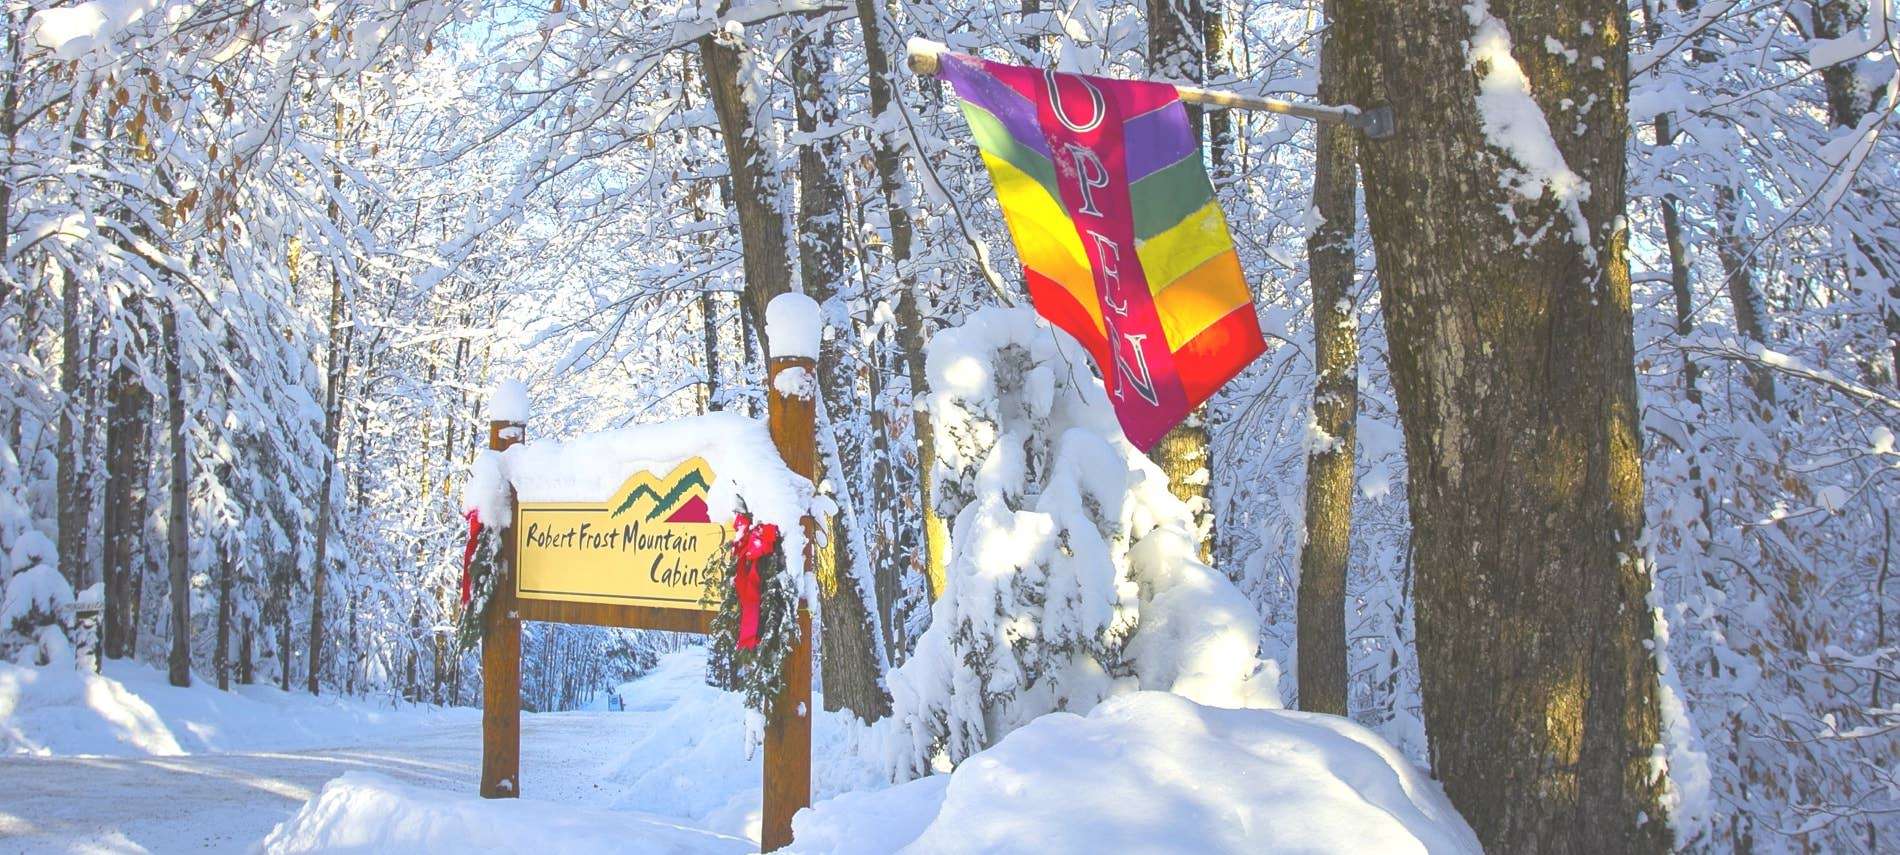 Entrance, wood and yellow sign that reads Robert Frost Mountain Cabins, colorful open flag, all surrounded by white snow covered trees and ground